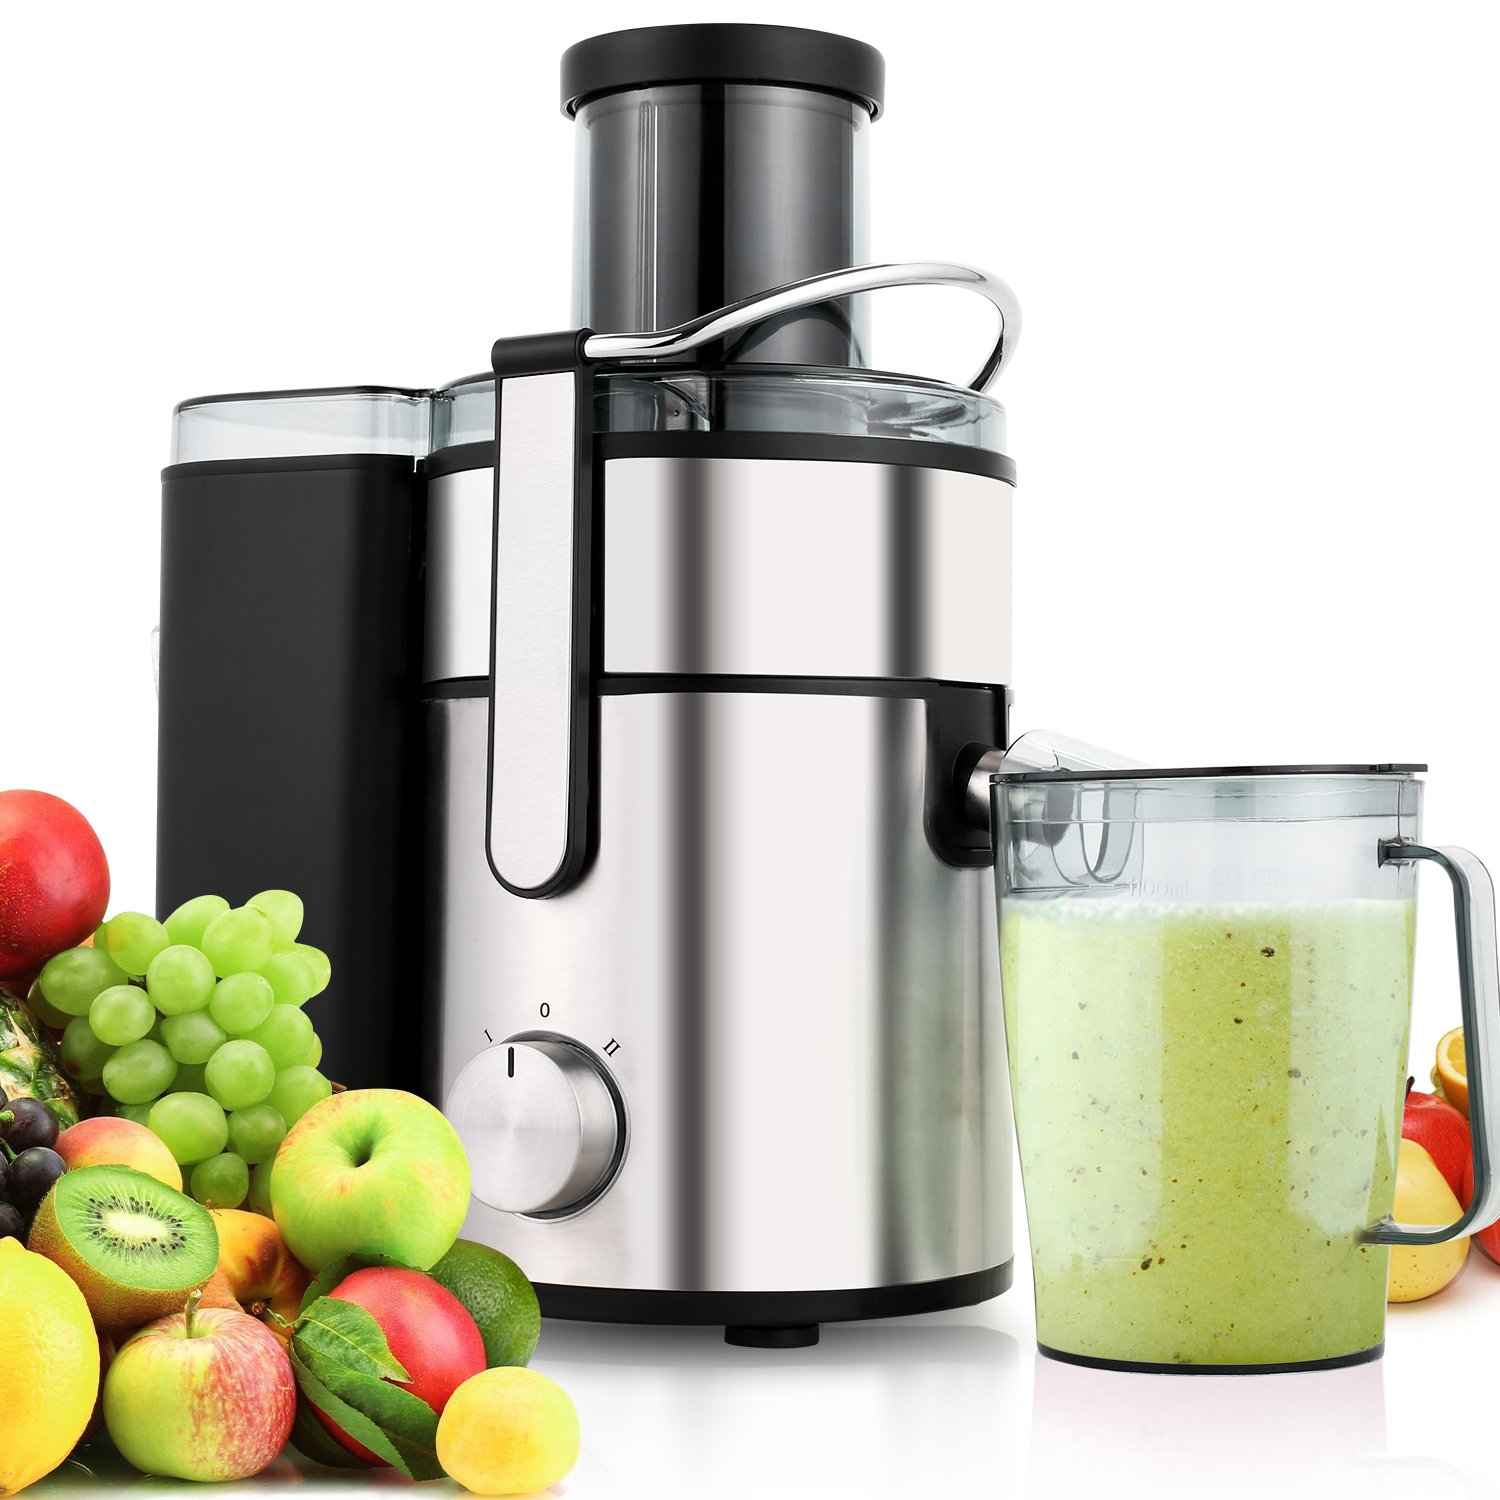 Flagup 1000 Watt Whole Fruit Juicer with 80mm Wide Mouth, 2 Speed Low-Noise Centrifugal Power Juicer Juice Extractor with Juice Jug(1000ML)